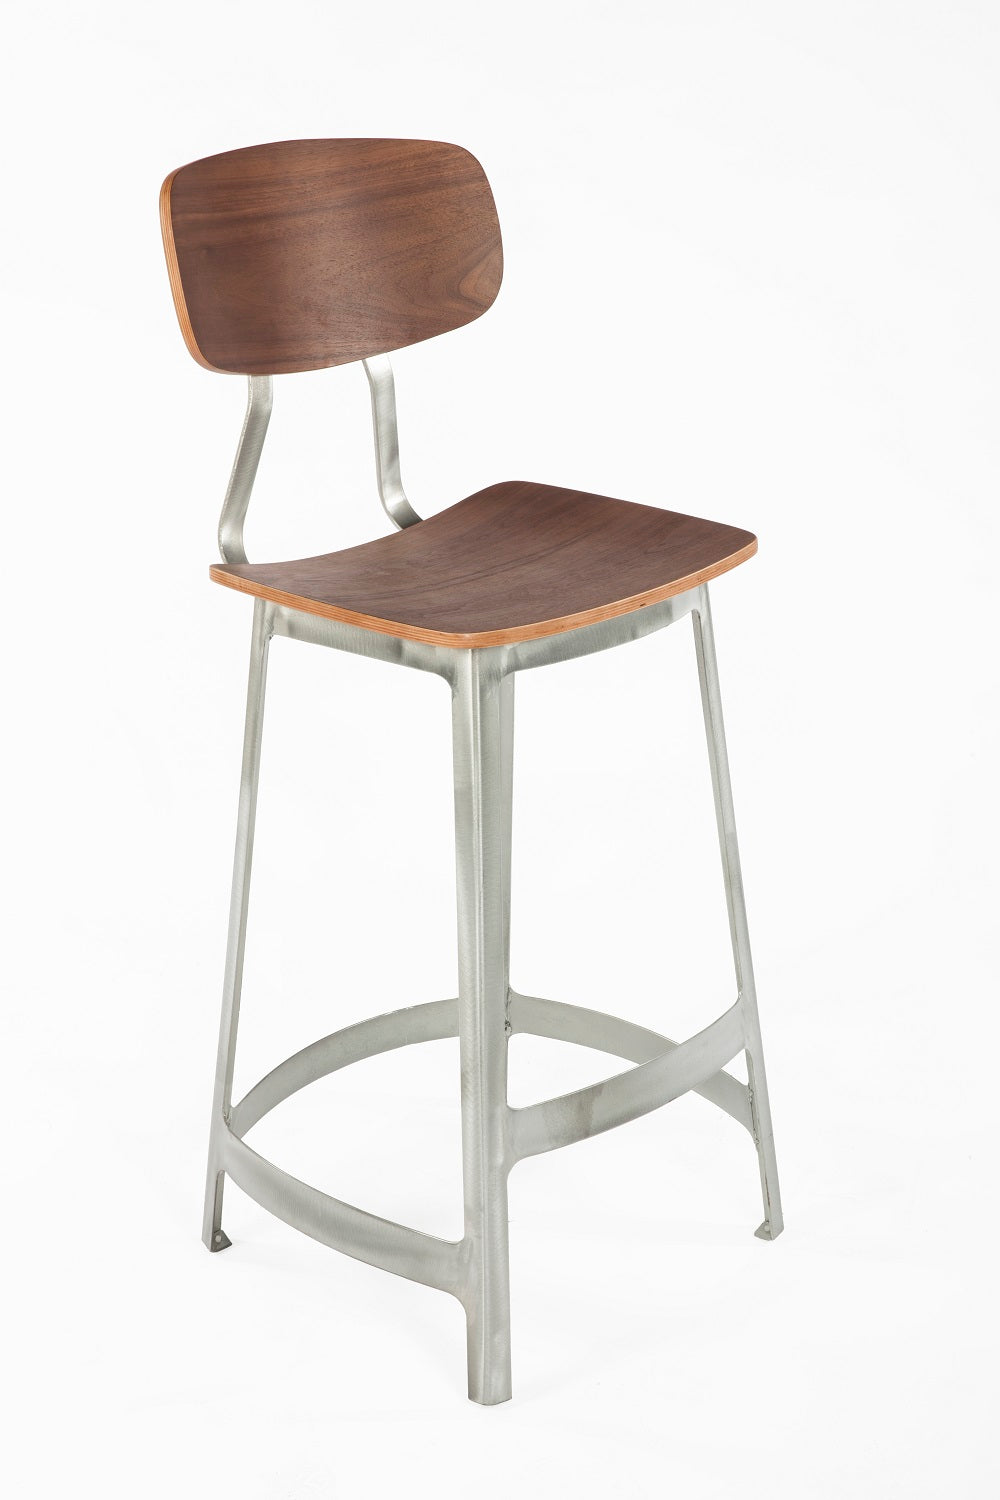 The Vyl Stool [FOC52575WALNUT]